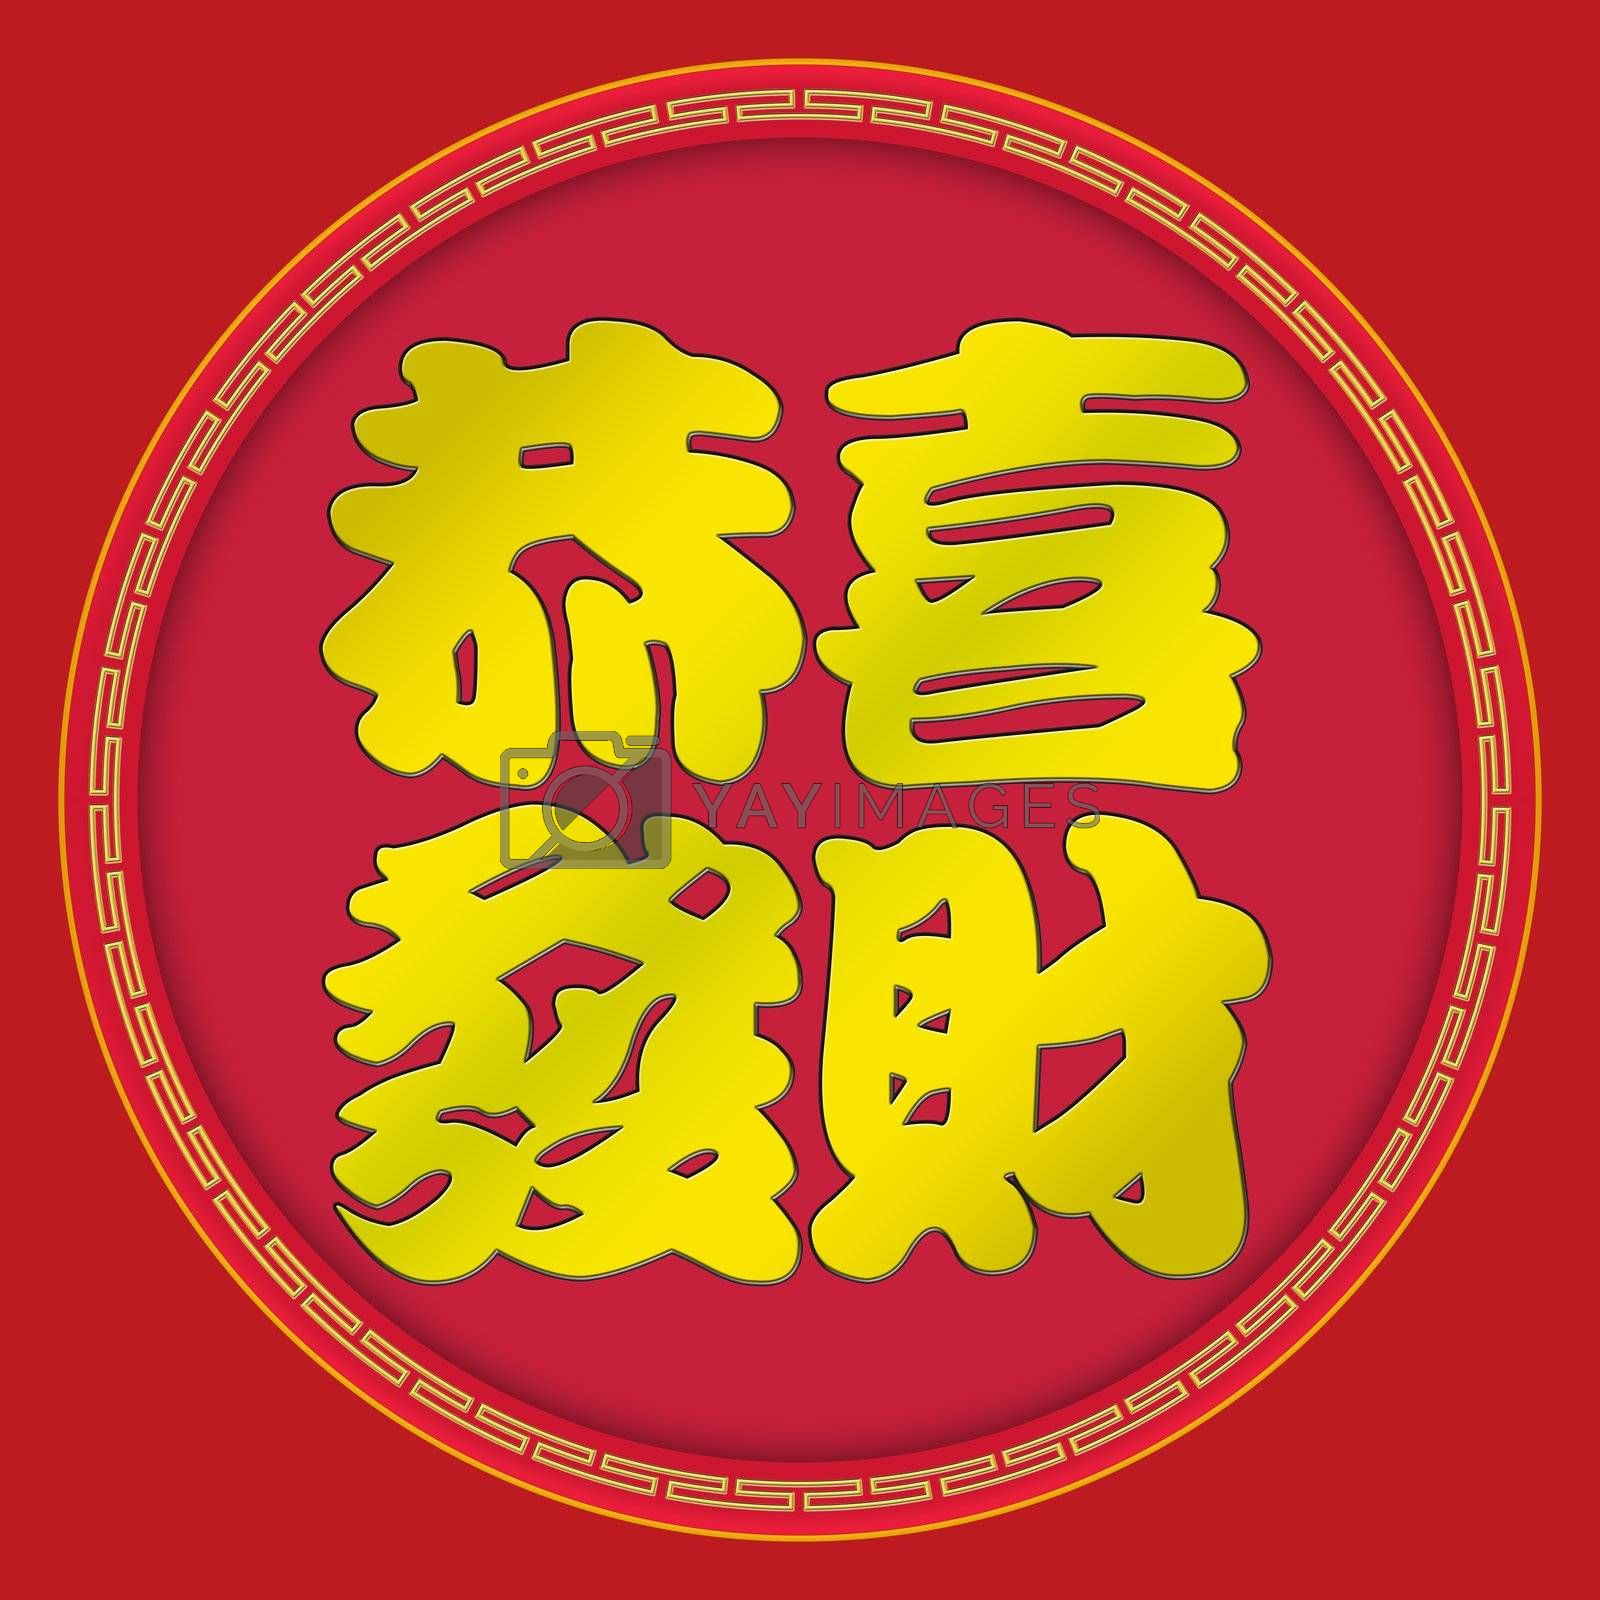 Kung Hei Fat Choi (Wishing you prosperity and wealth) - This wording is always stated in Fai Chun(red banner/paper) and said by people in Chinese New Year (with clipping path)